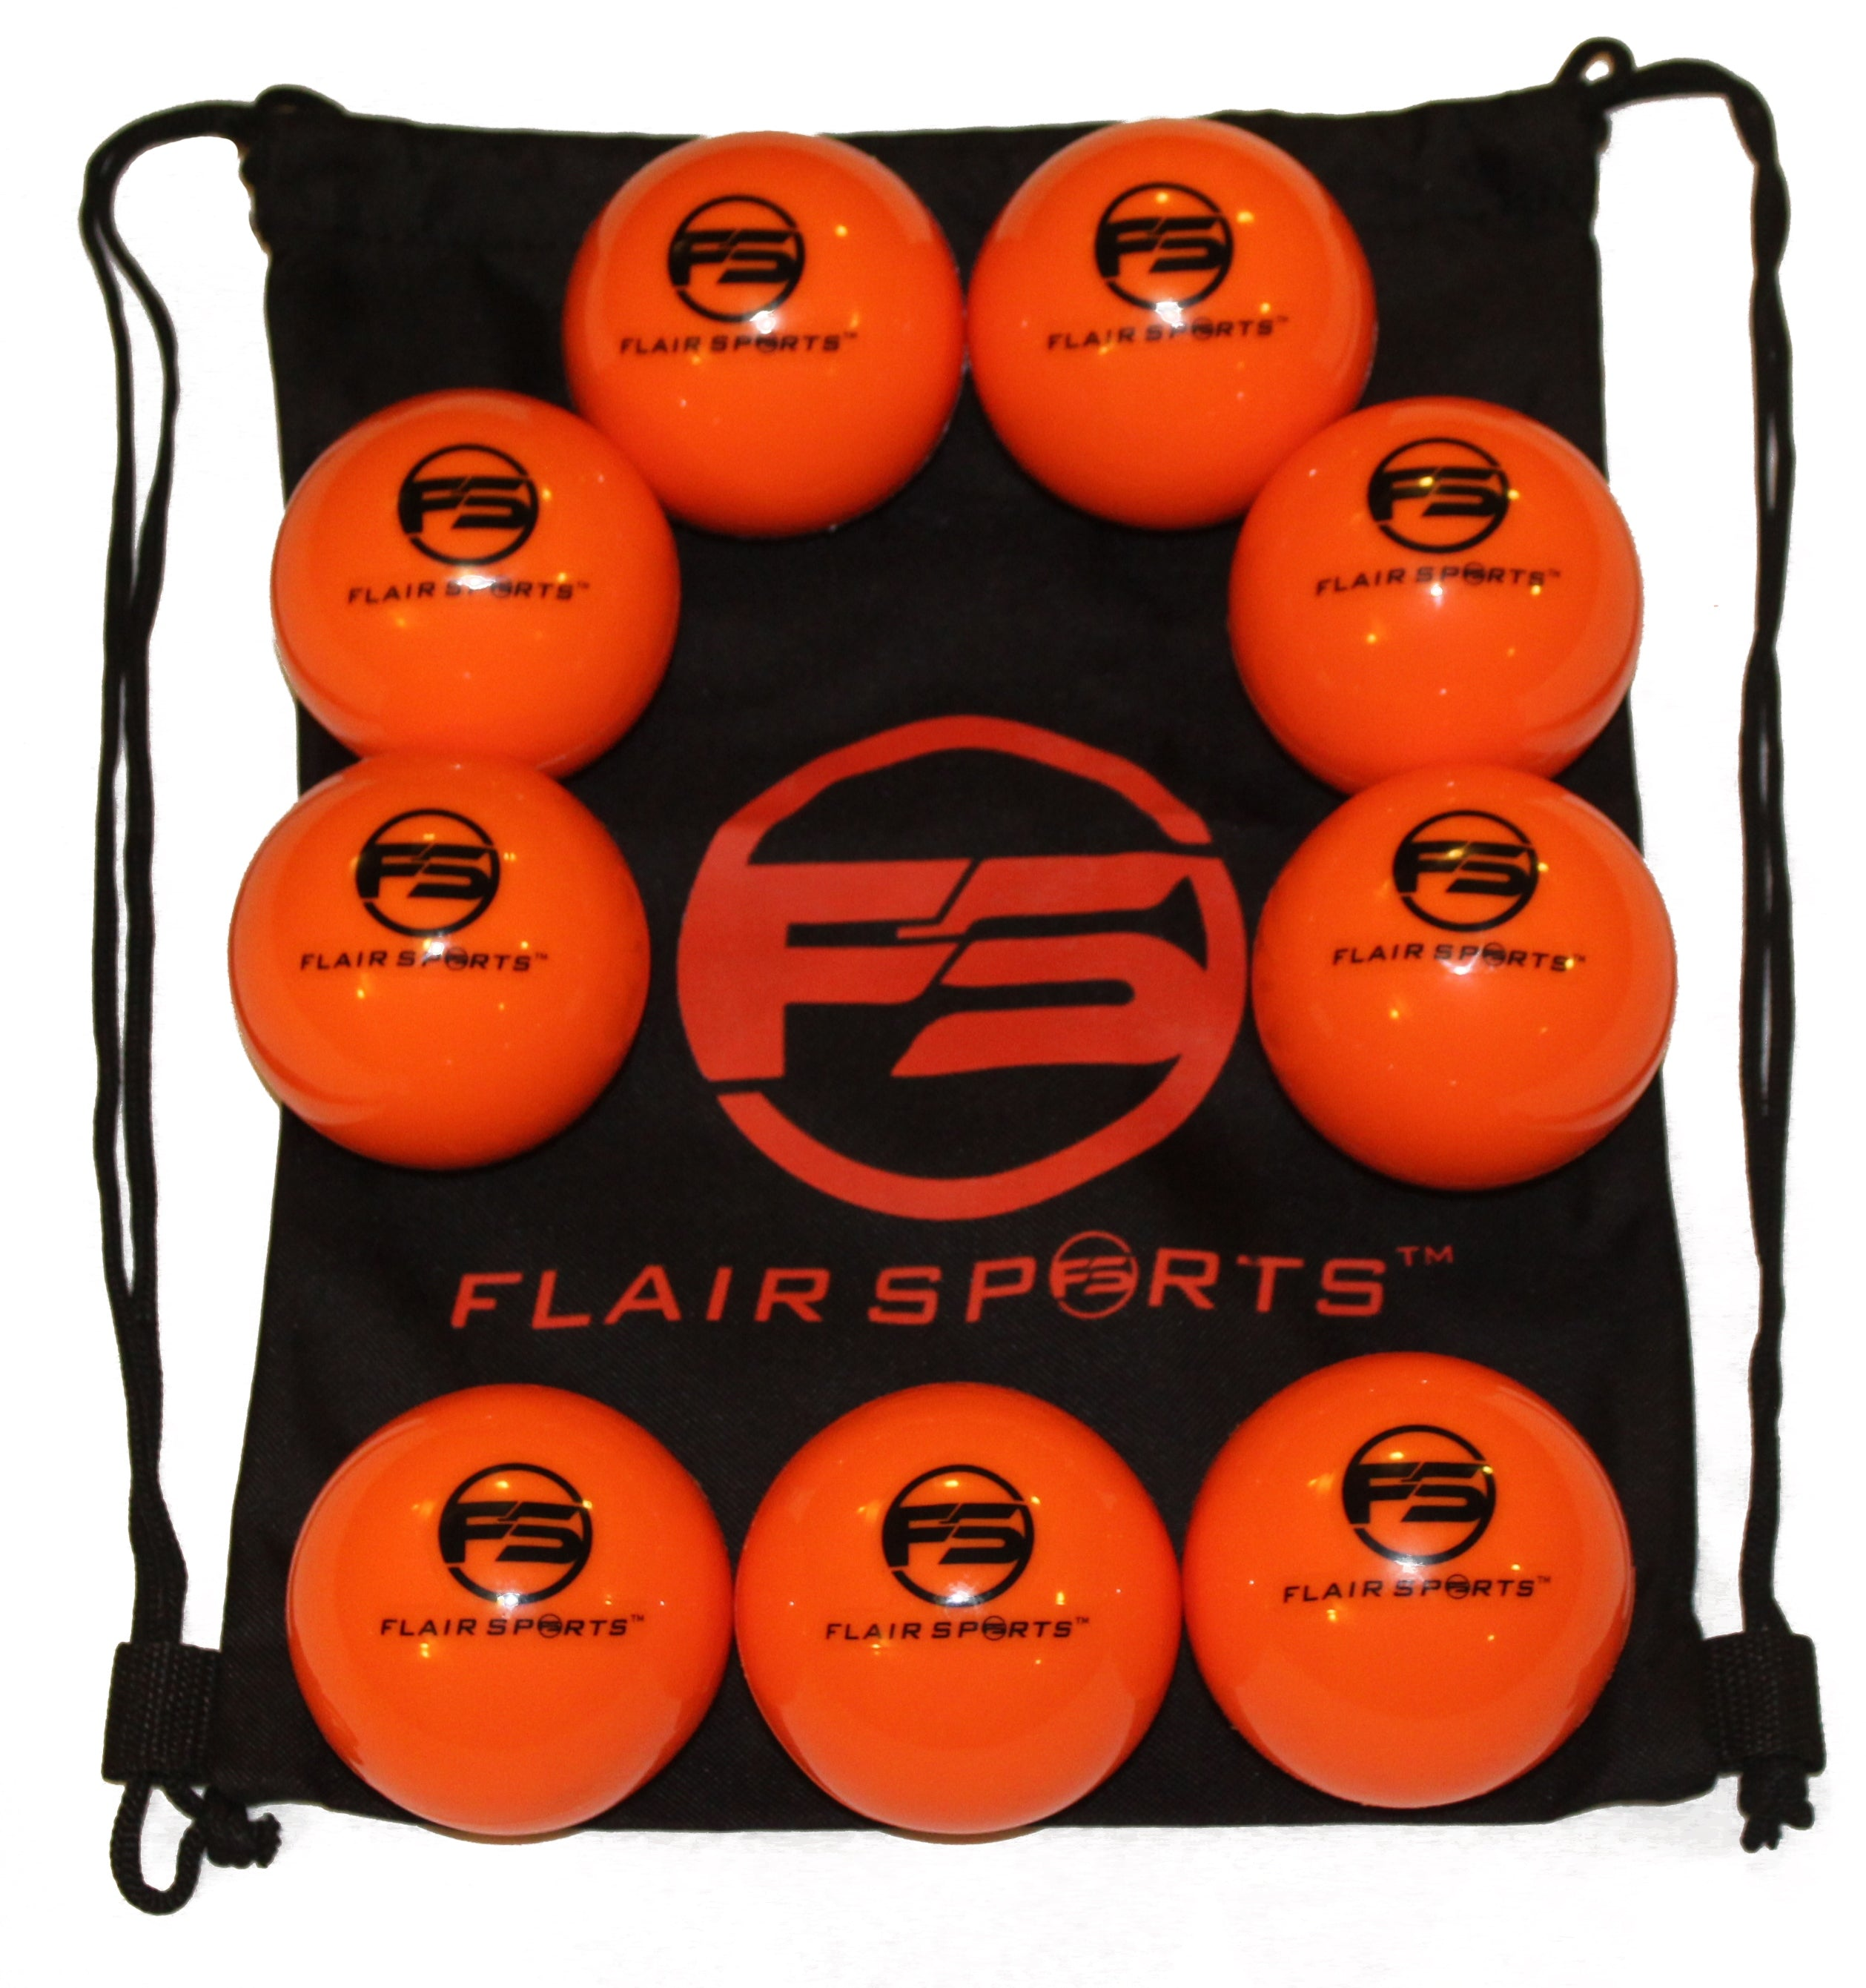 Flair Sports Weighted Hitting Balls (9 Pack)